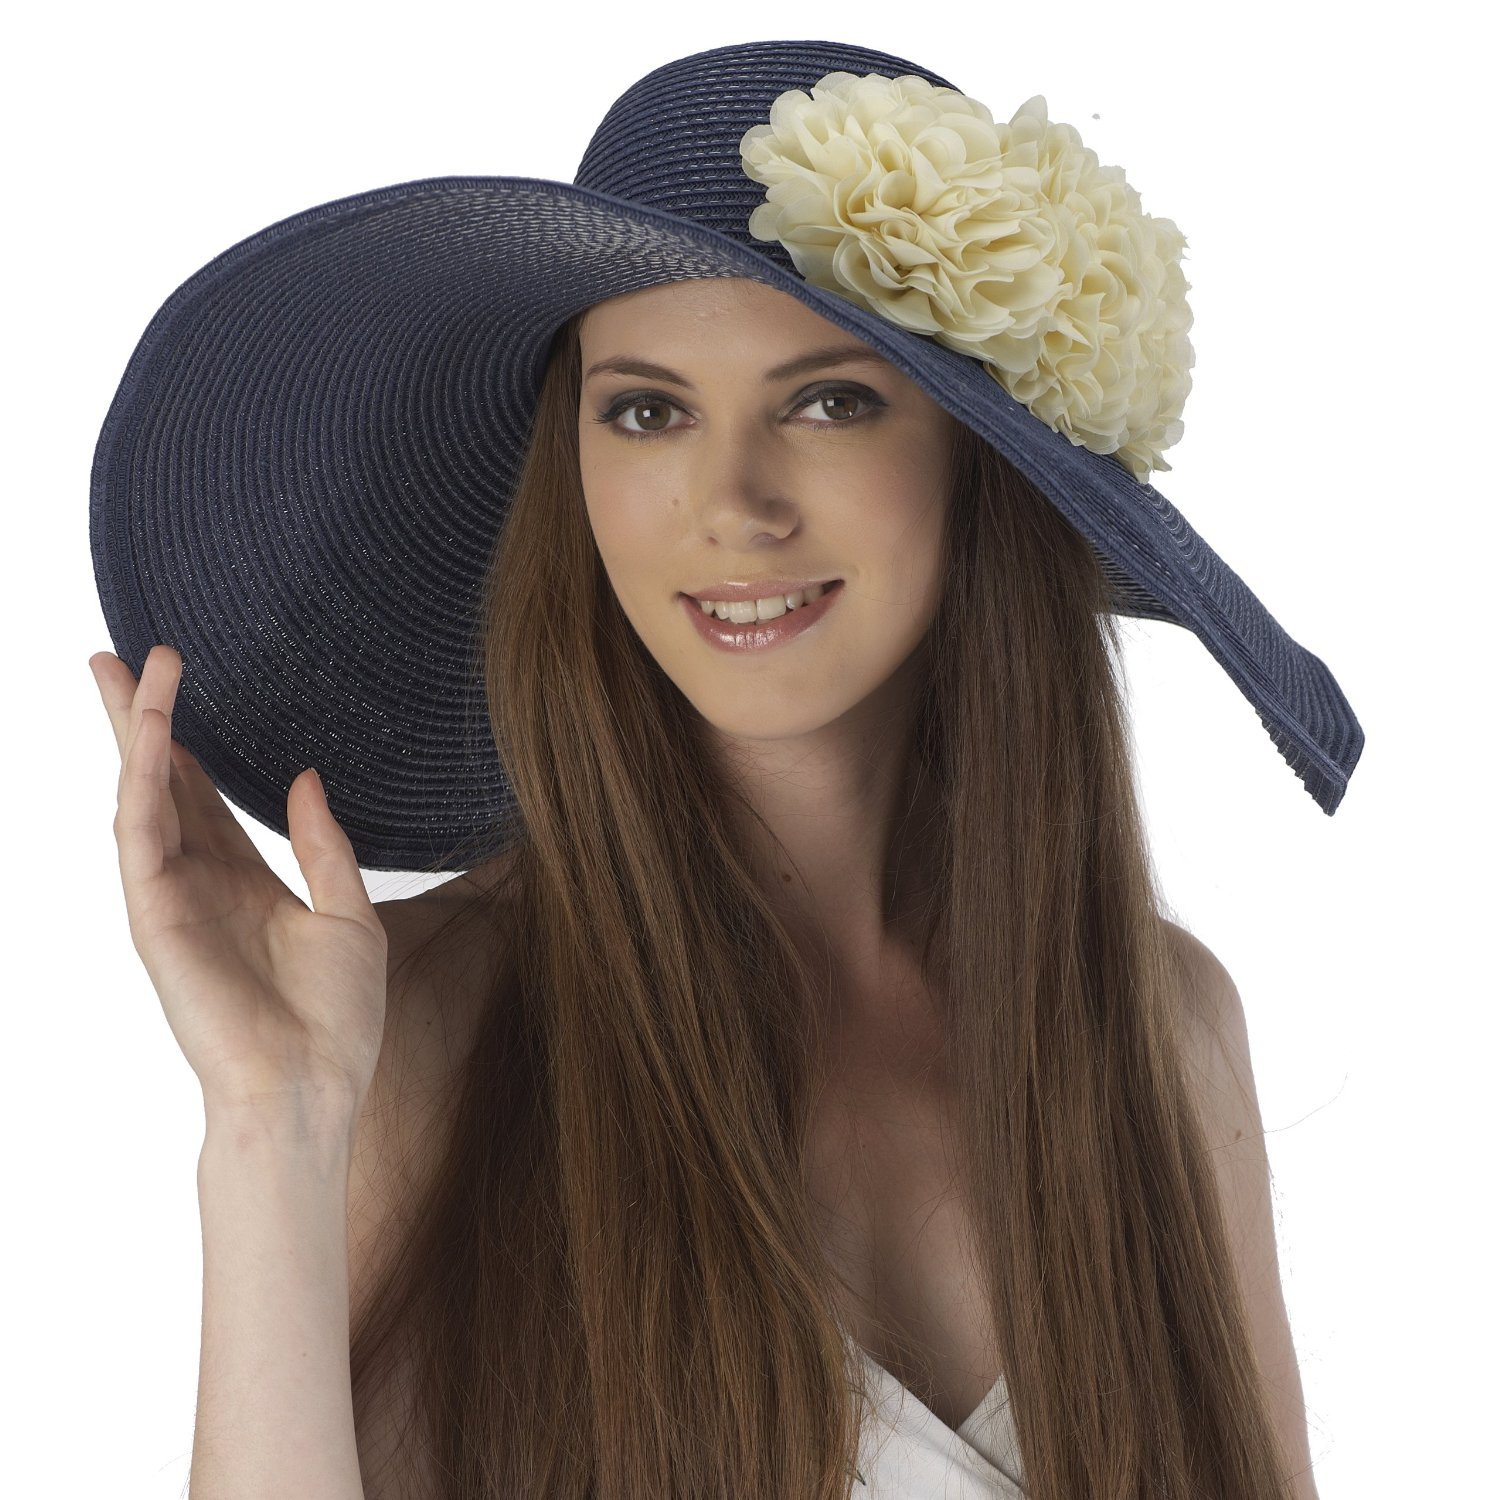 Summer Hats For Women With Short Hair Hats Fashion Styles ...